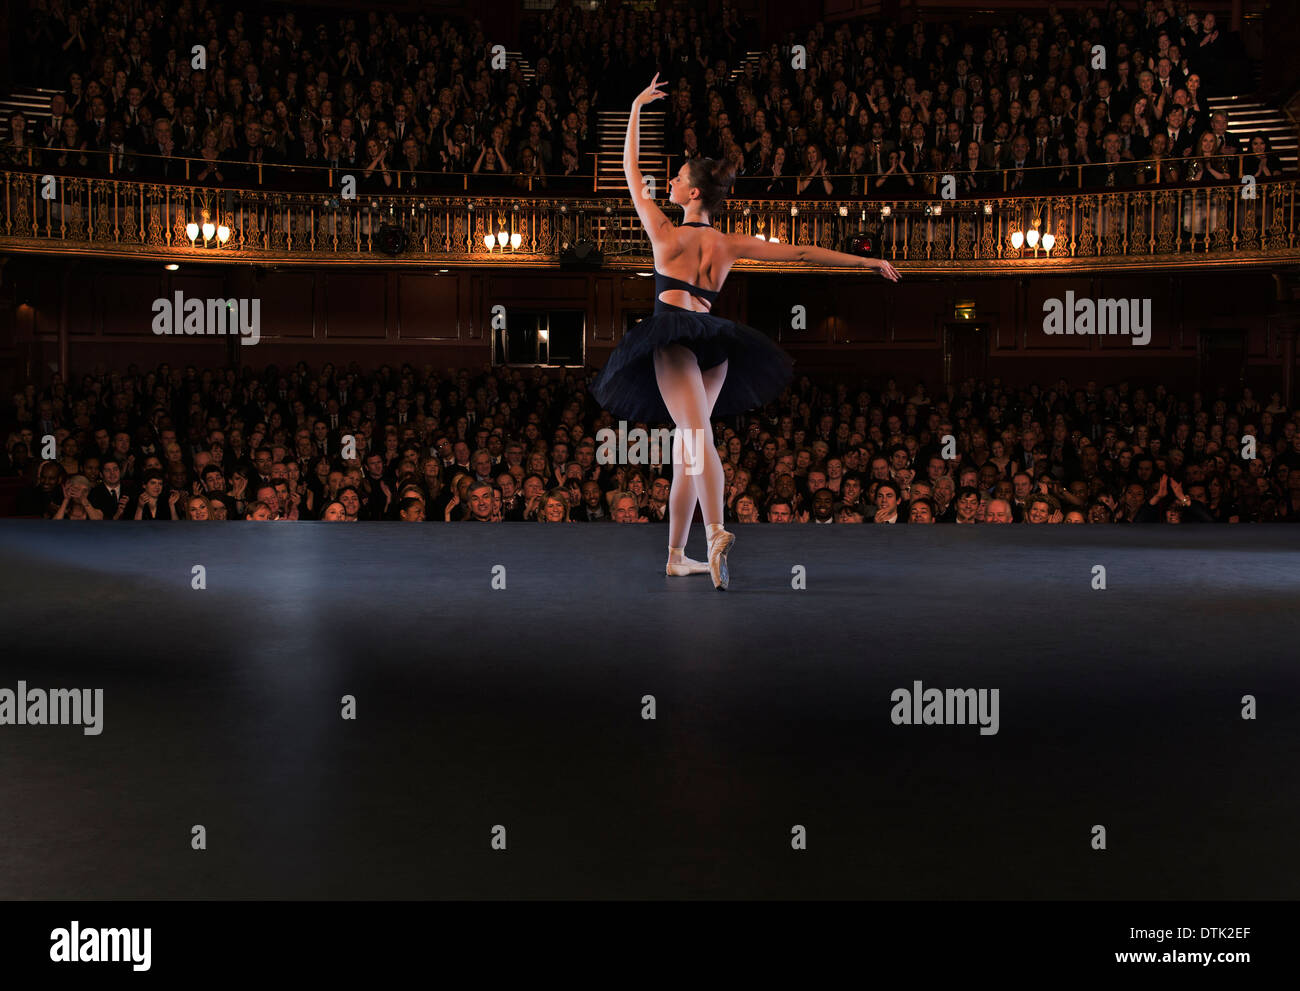 Ballet dancer performing on theater stage - Stock Image